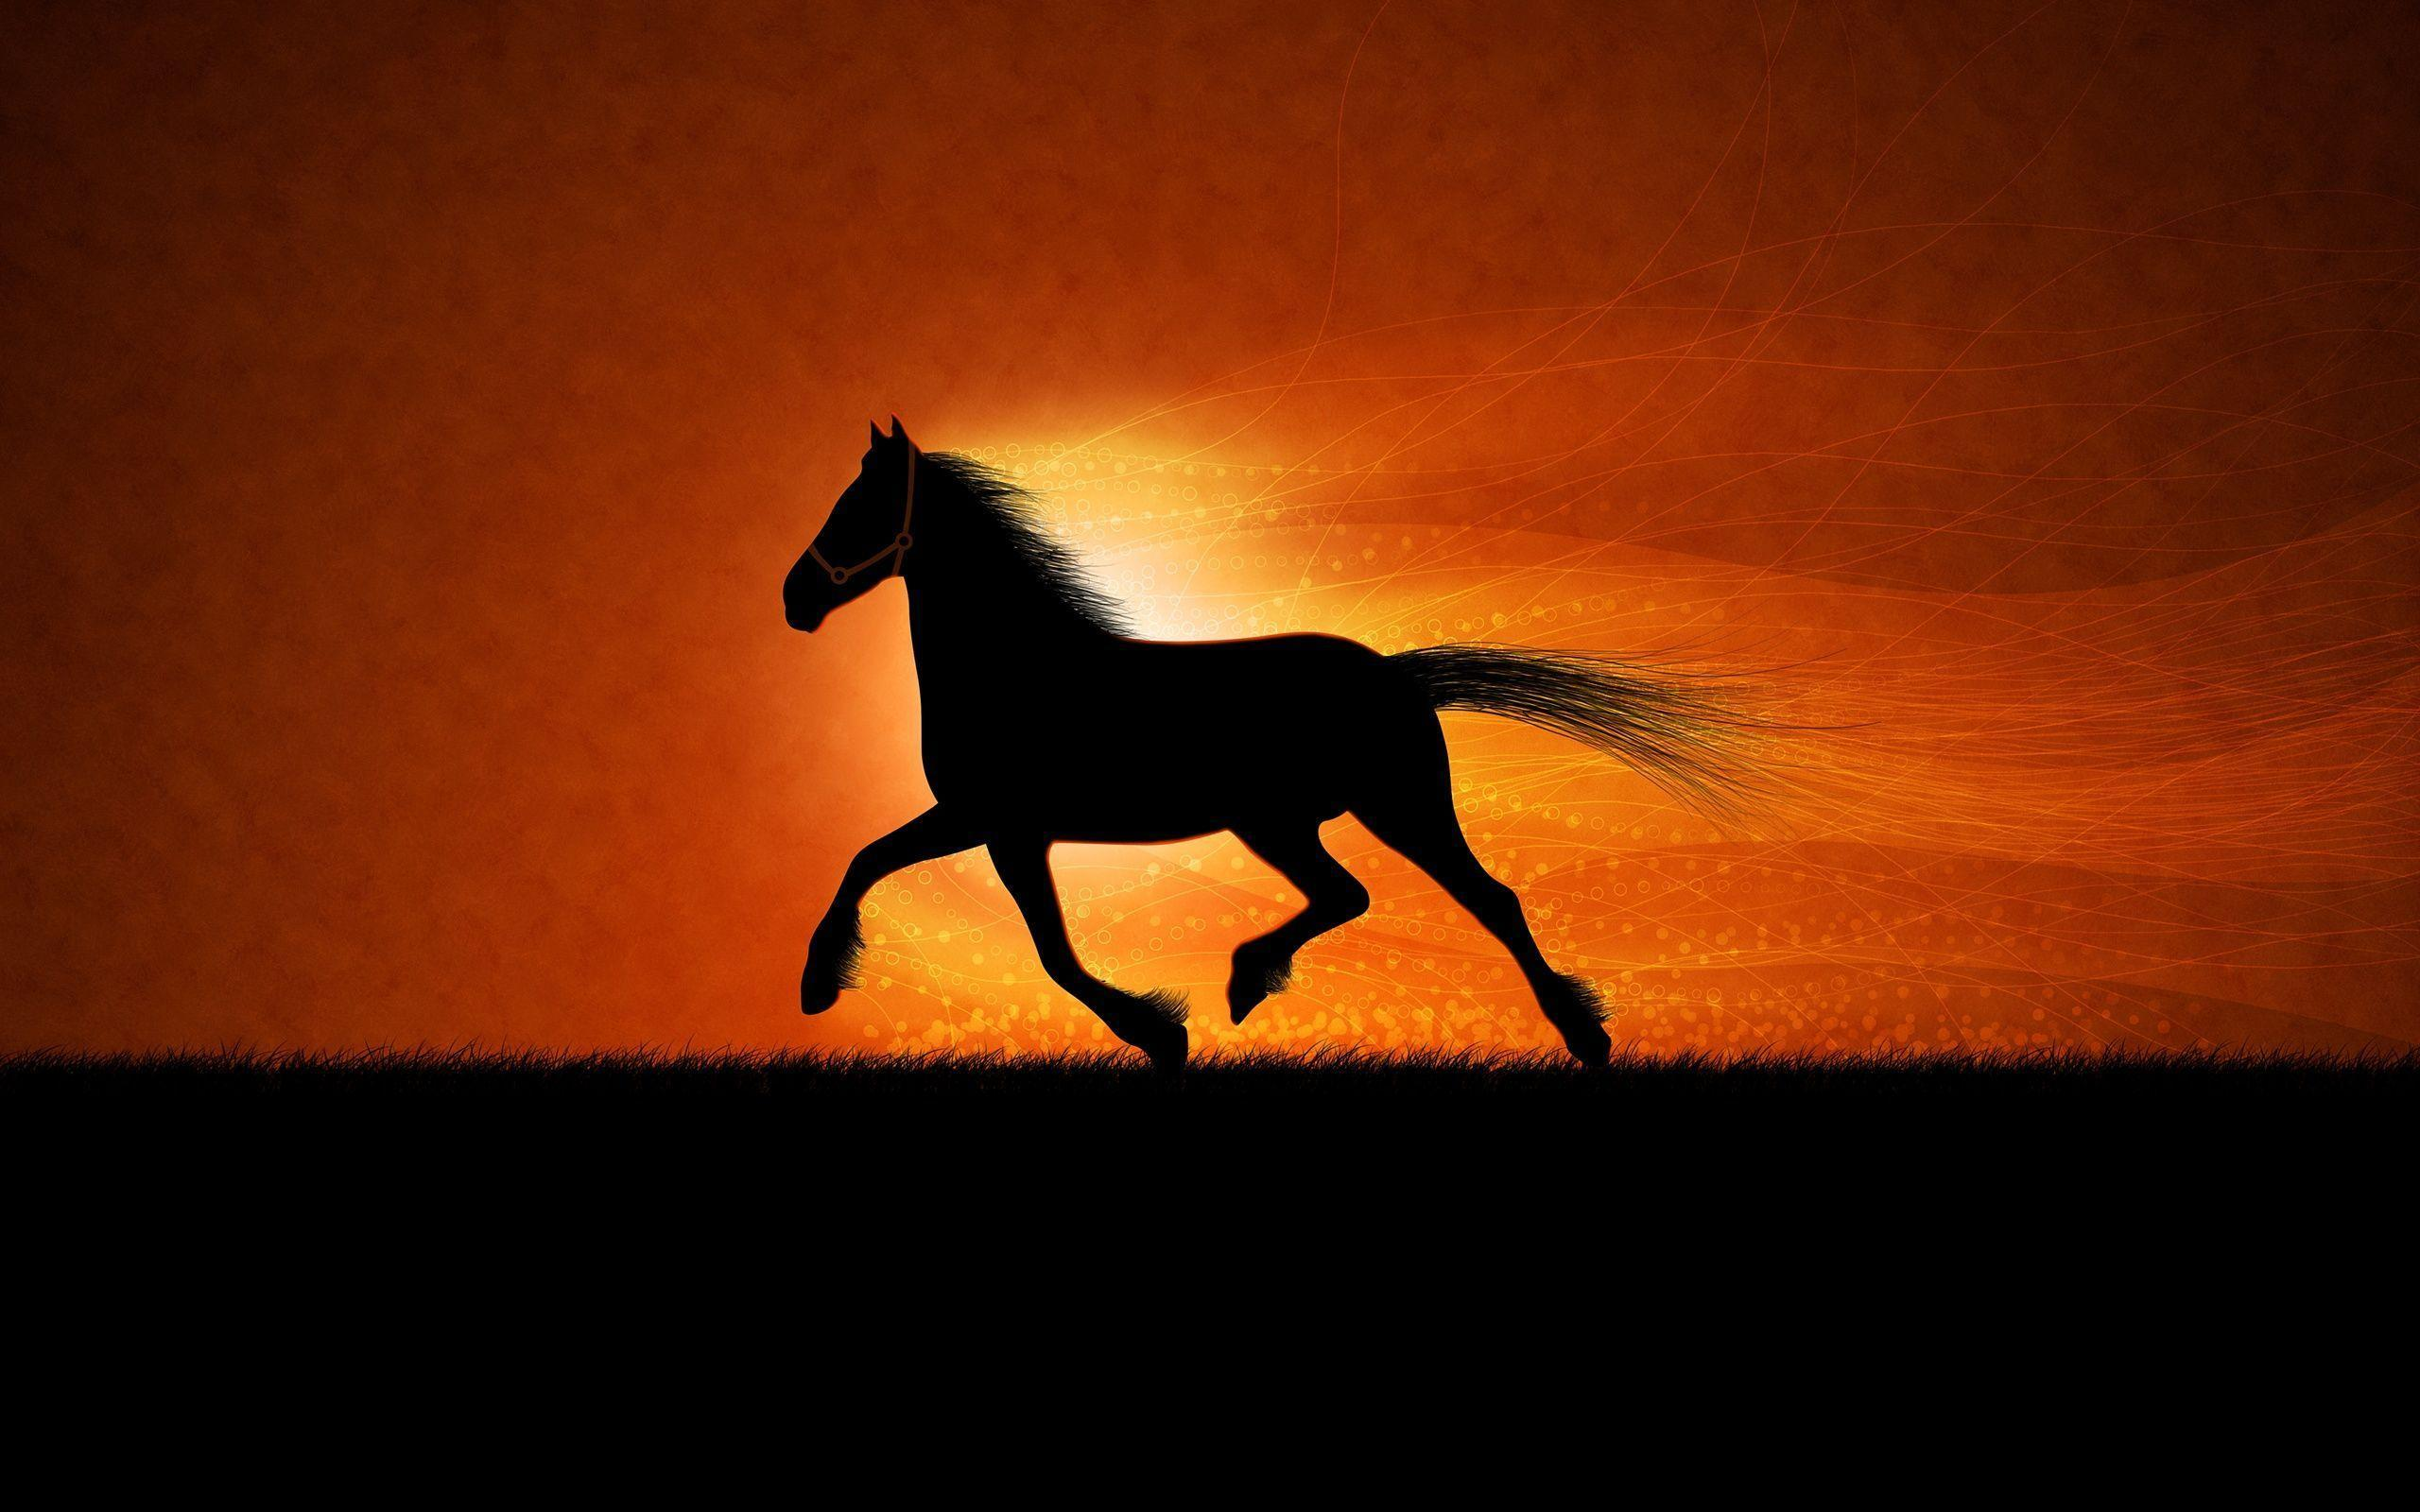 horse pics for backgrounds - wallpaper cave